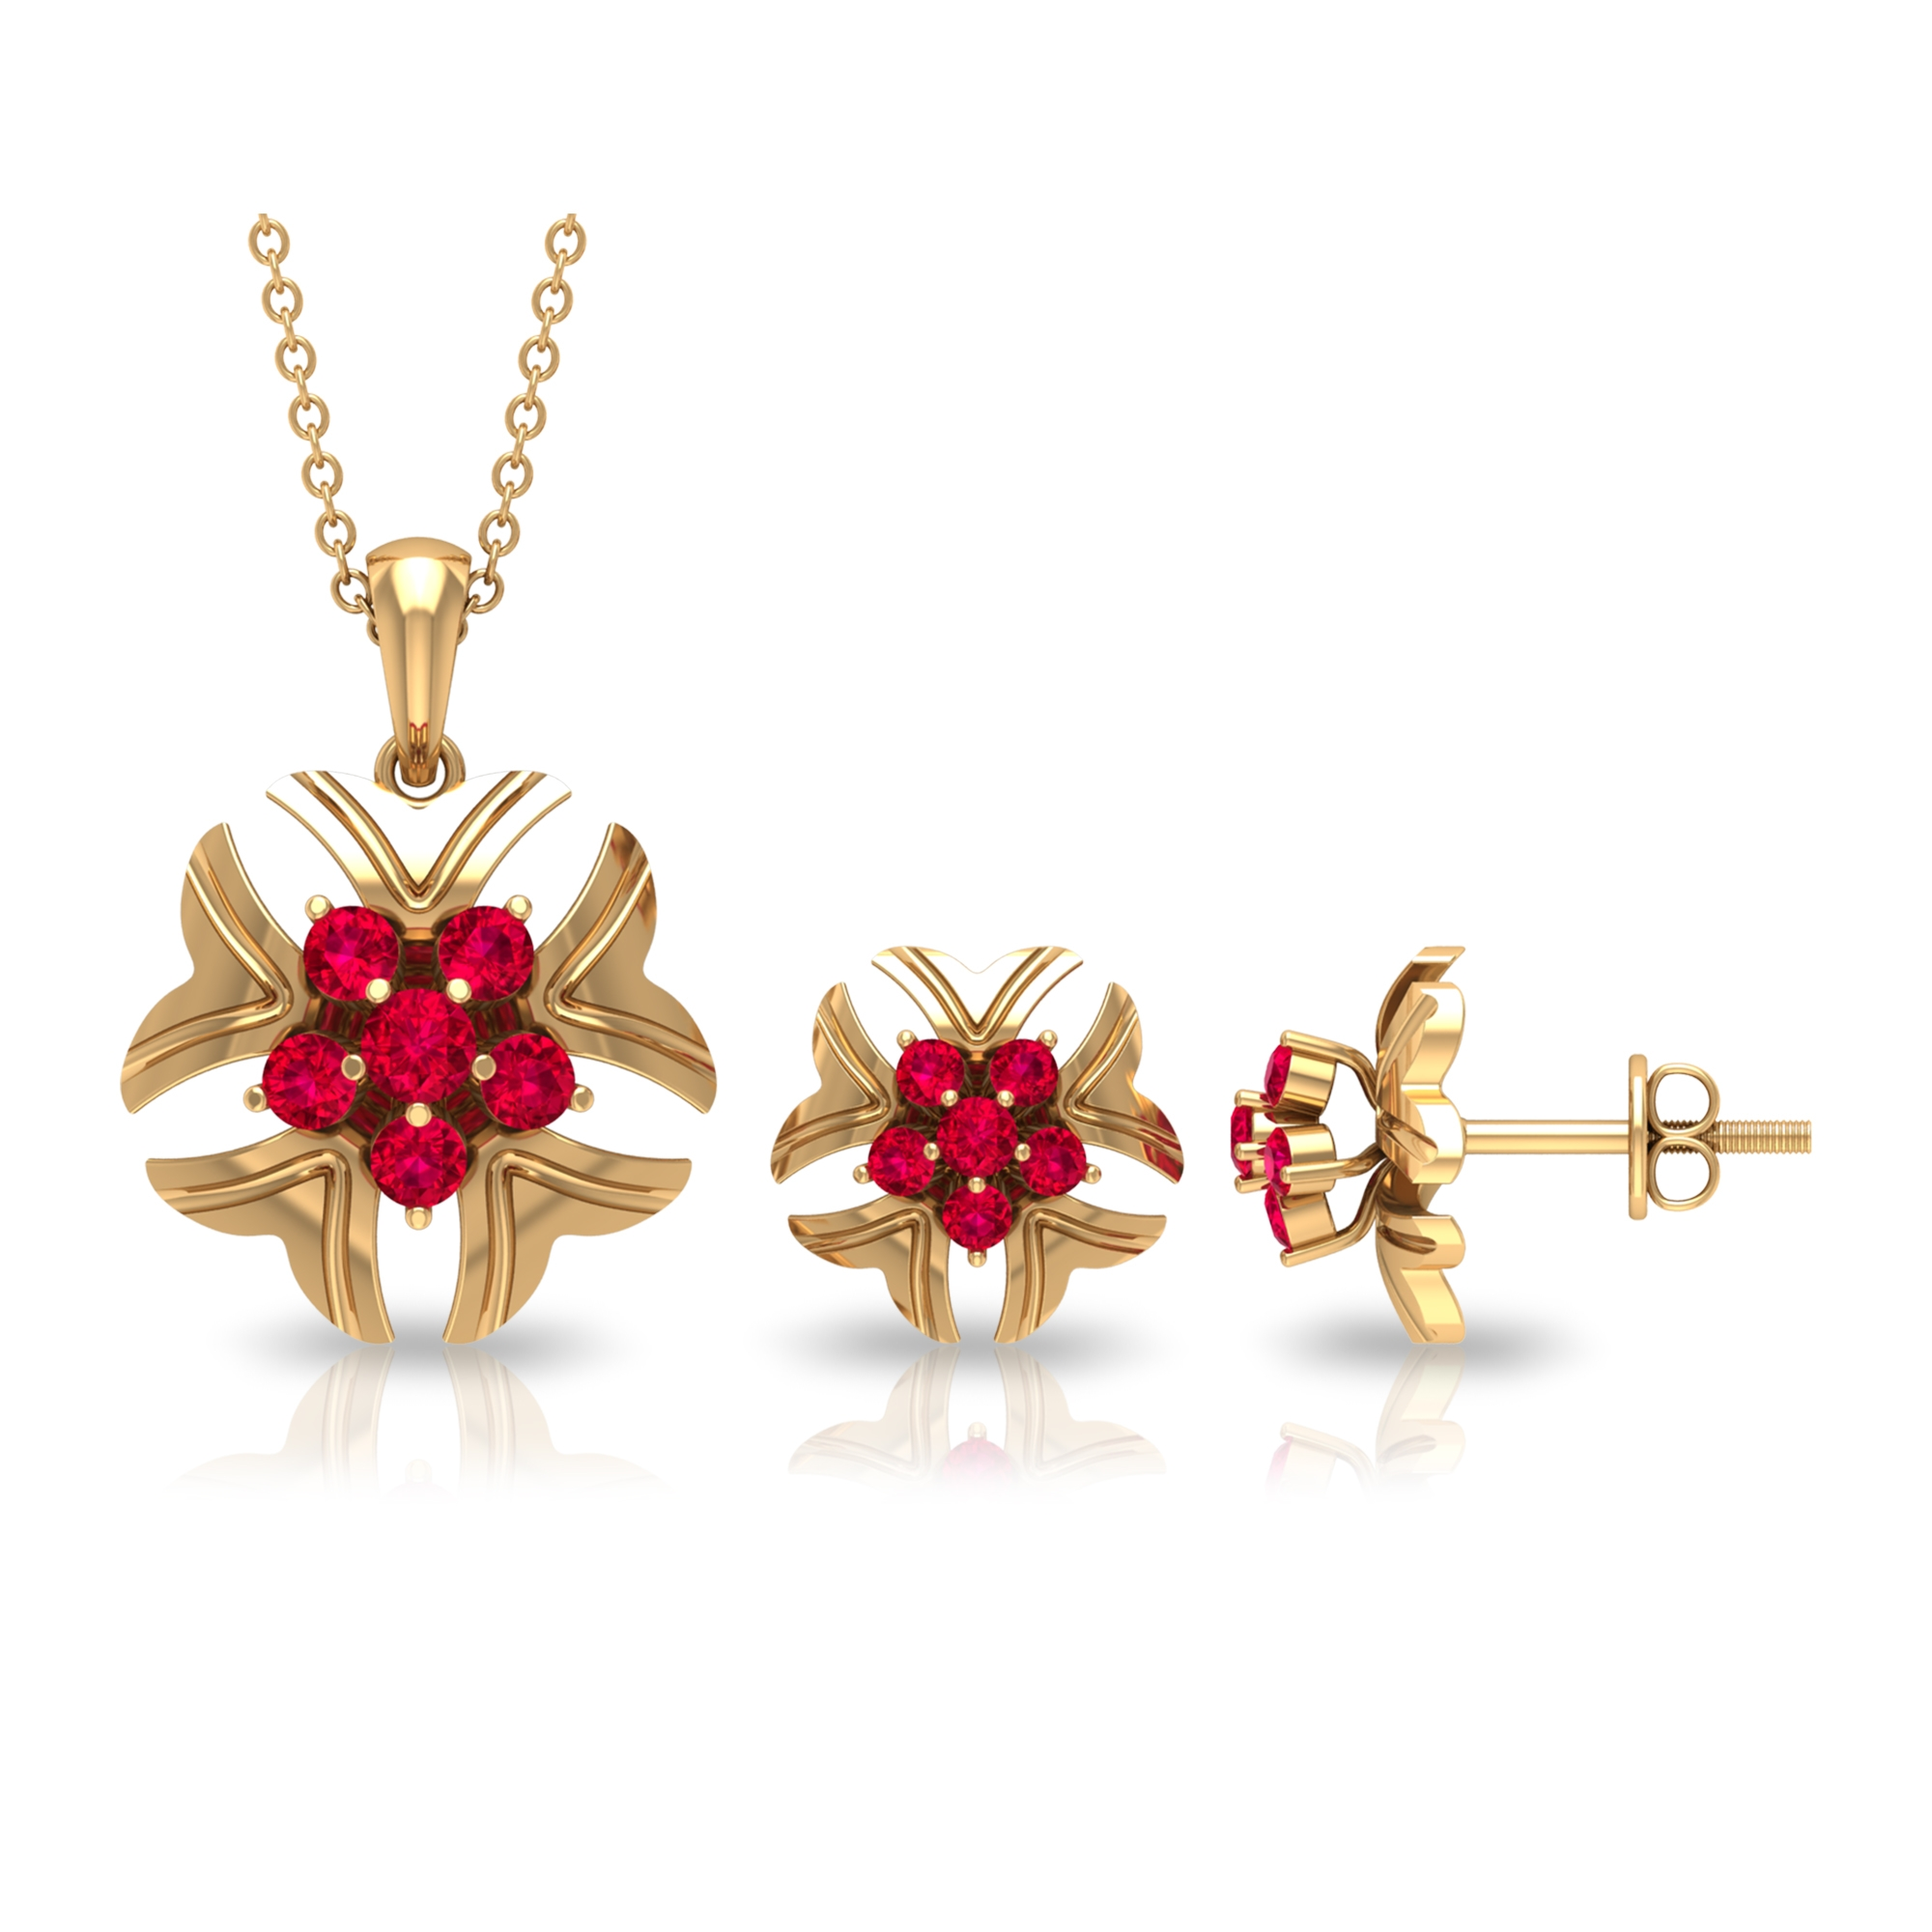 1 CT Ruby Cluster and Gold Engraved Flower Jewelry Set